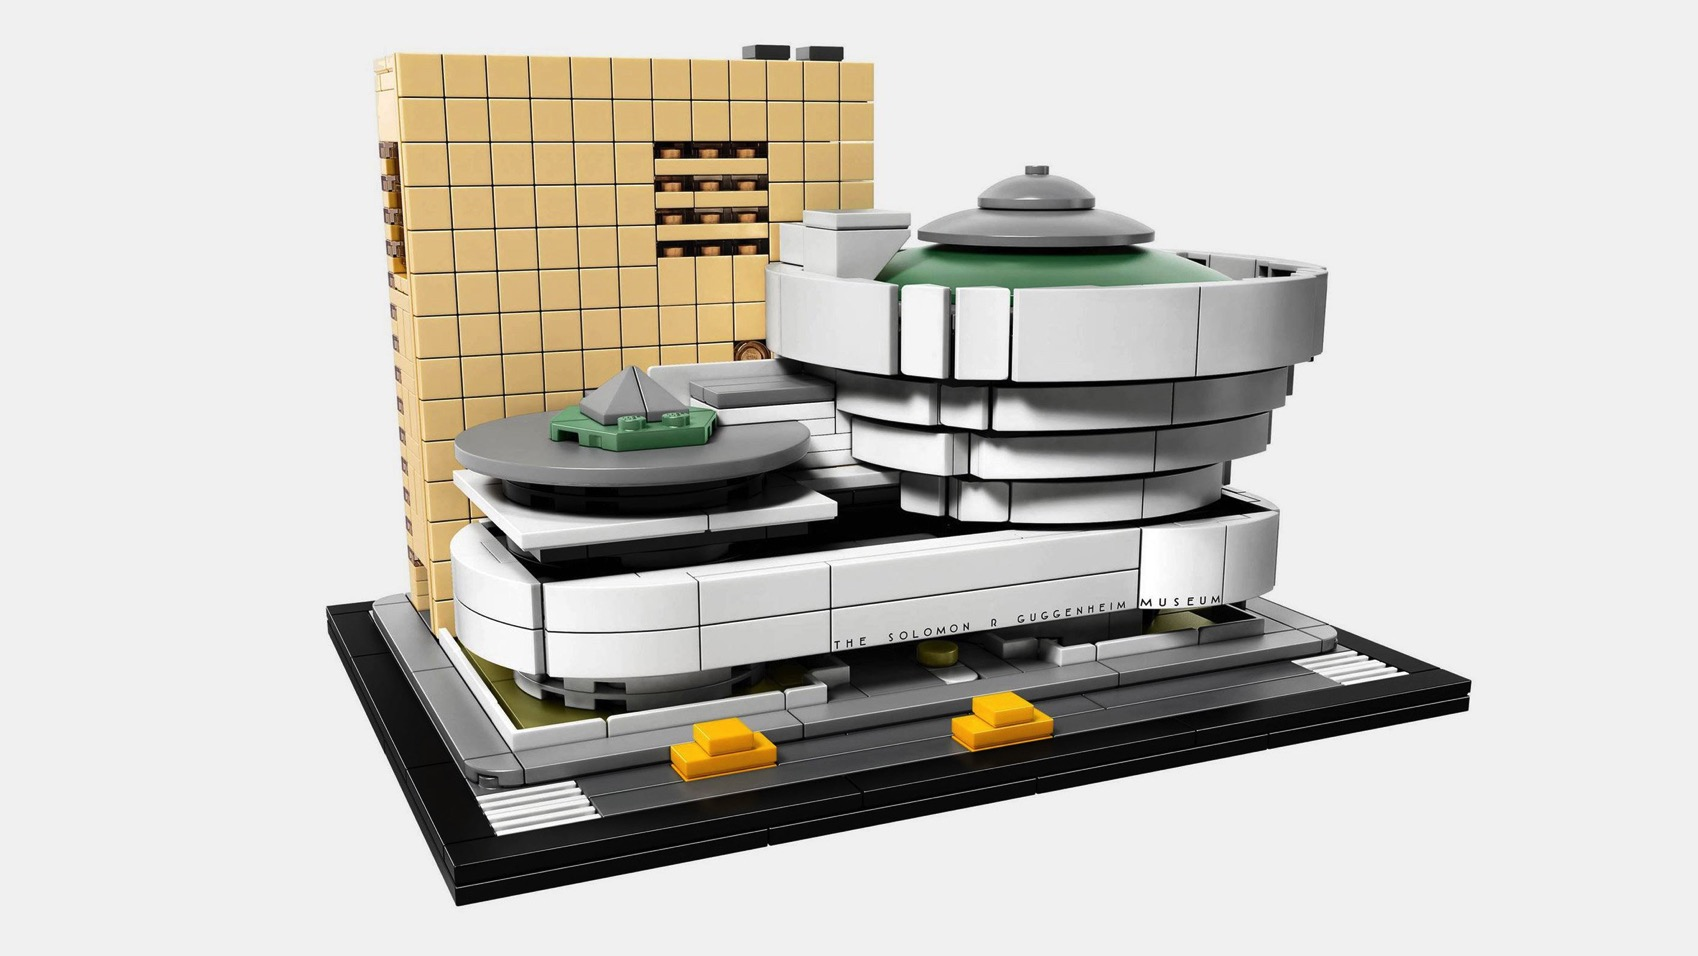 Lego guggenheim news design products toys architecture dezeen hero